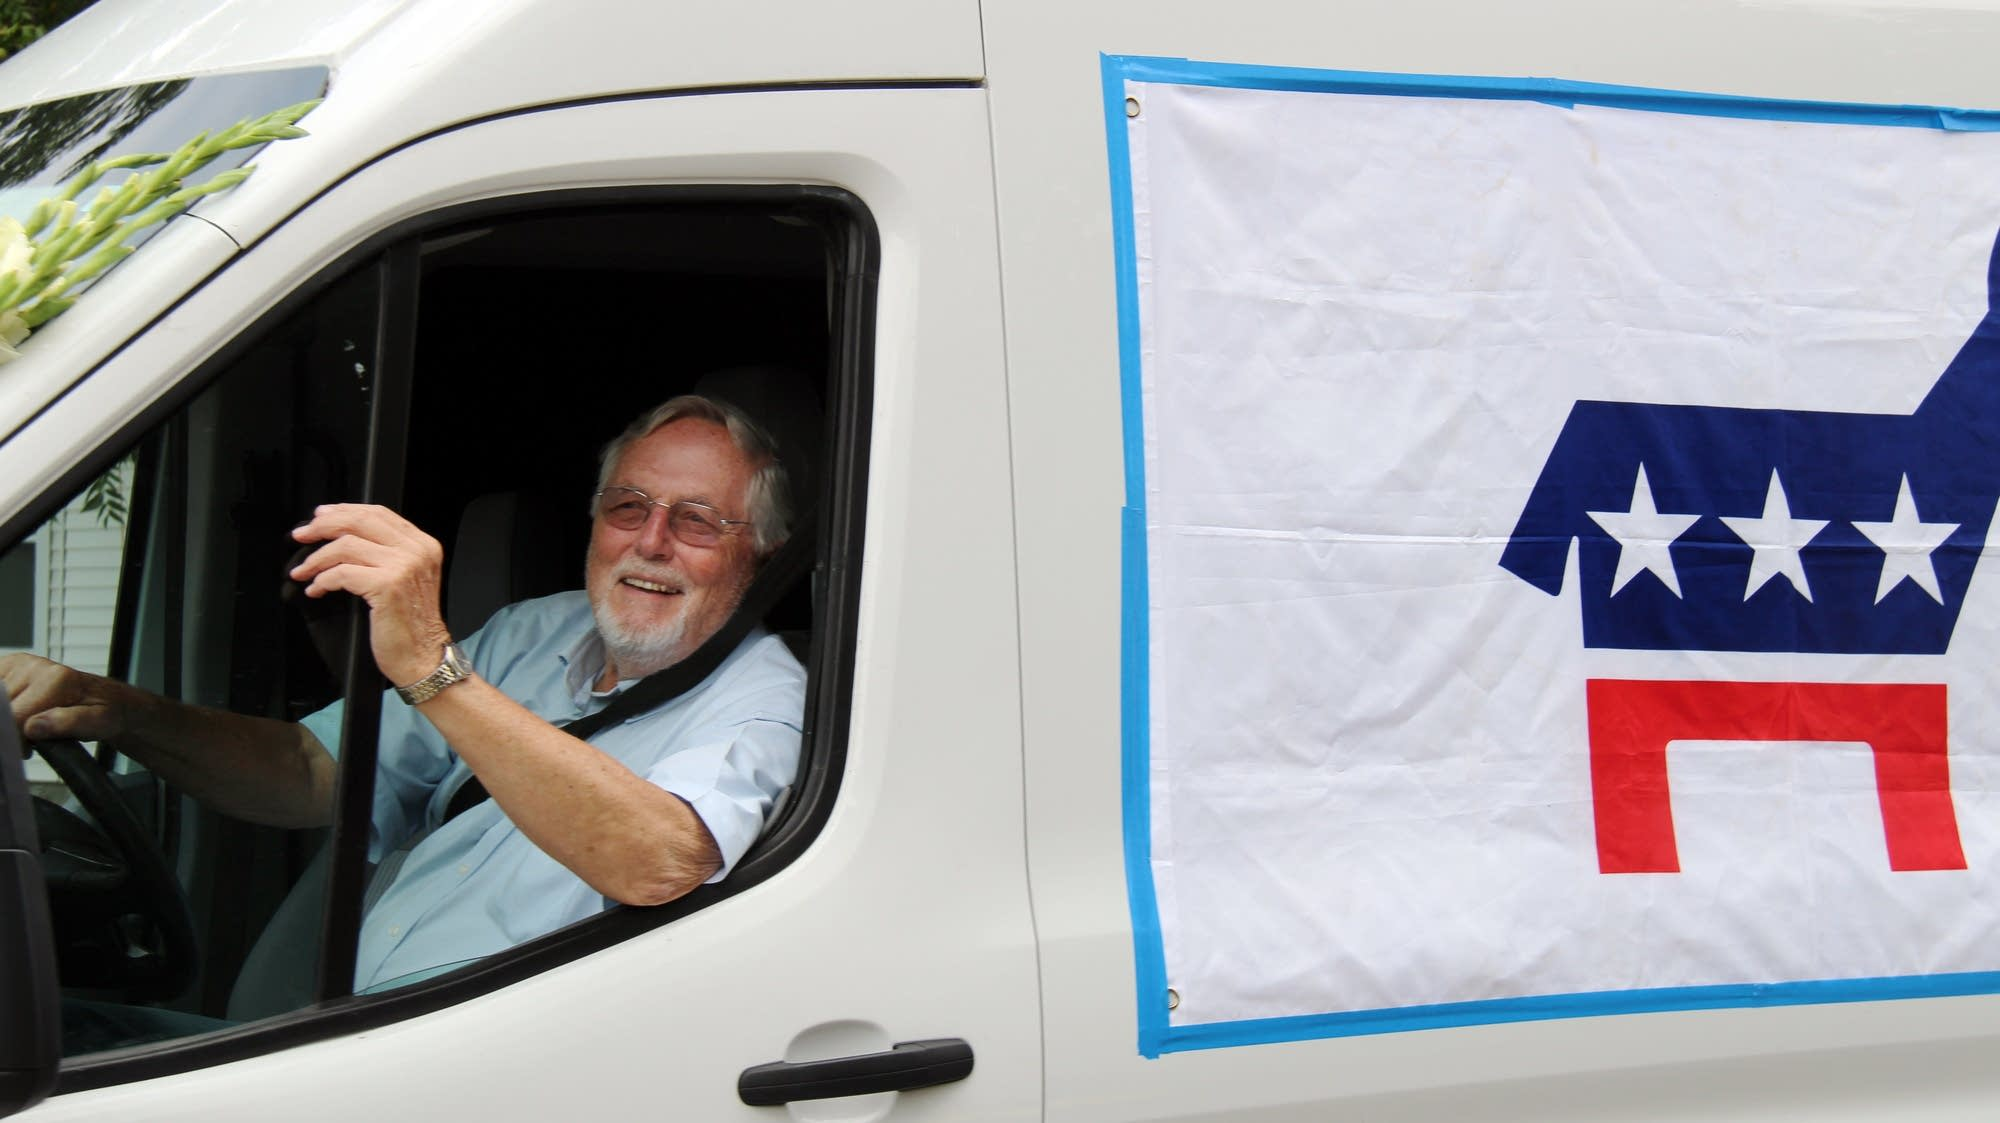 Dick Dahl drives a van promoting DFL candidates.